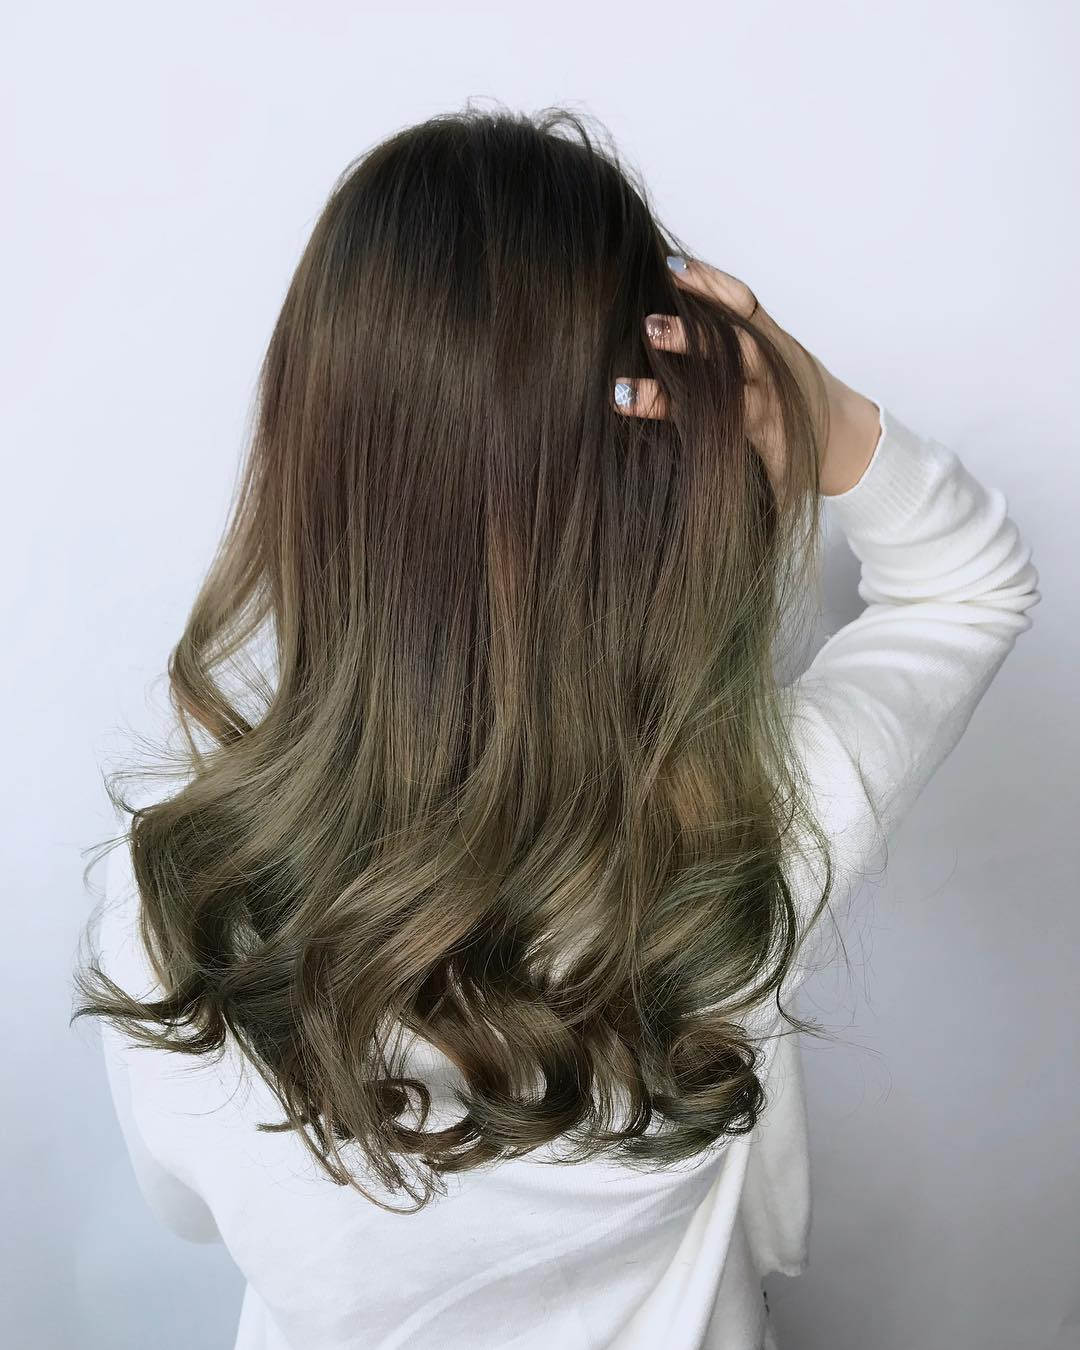 Green Brown Hair Colour by Walking on Sunshine